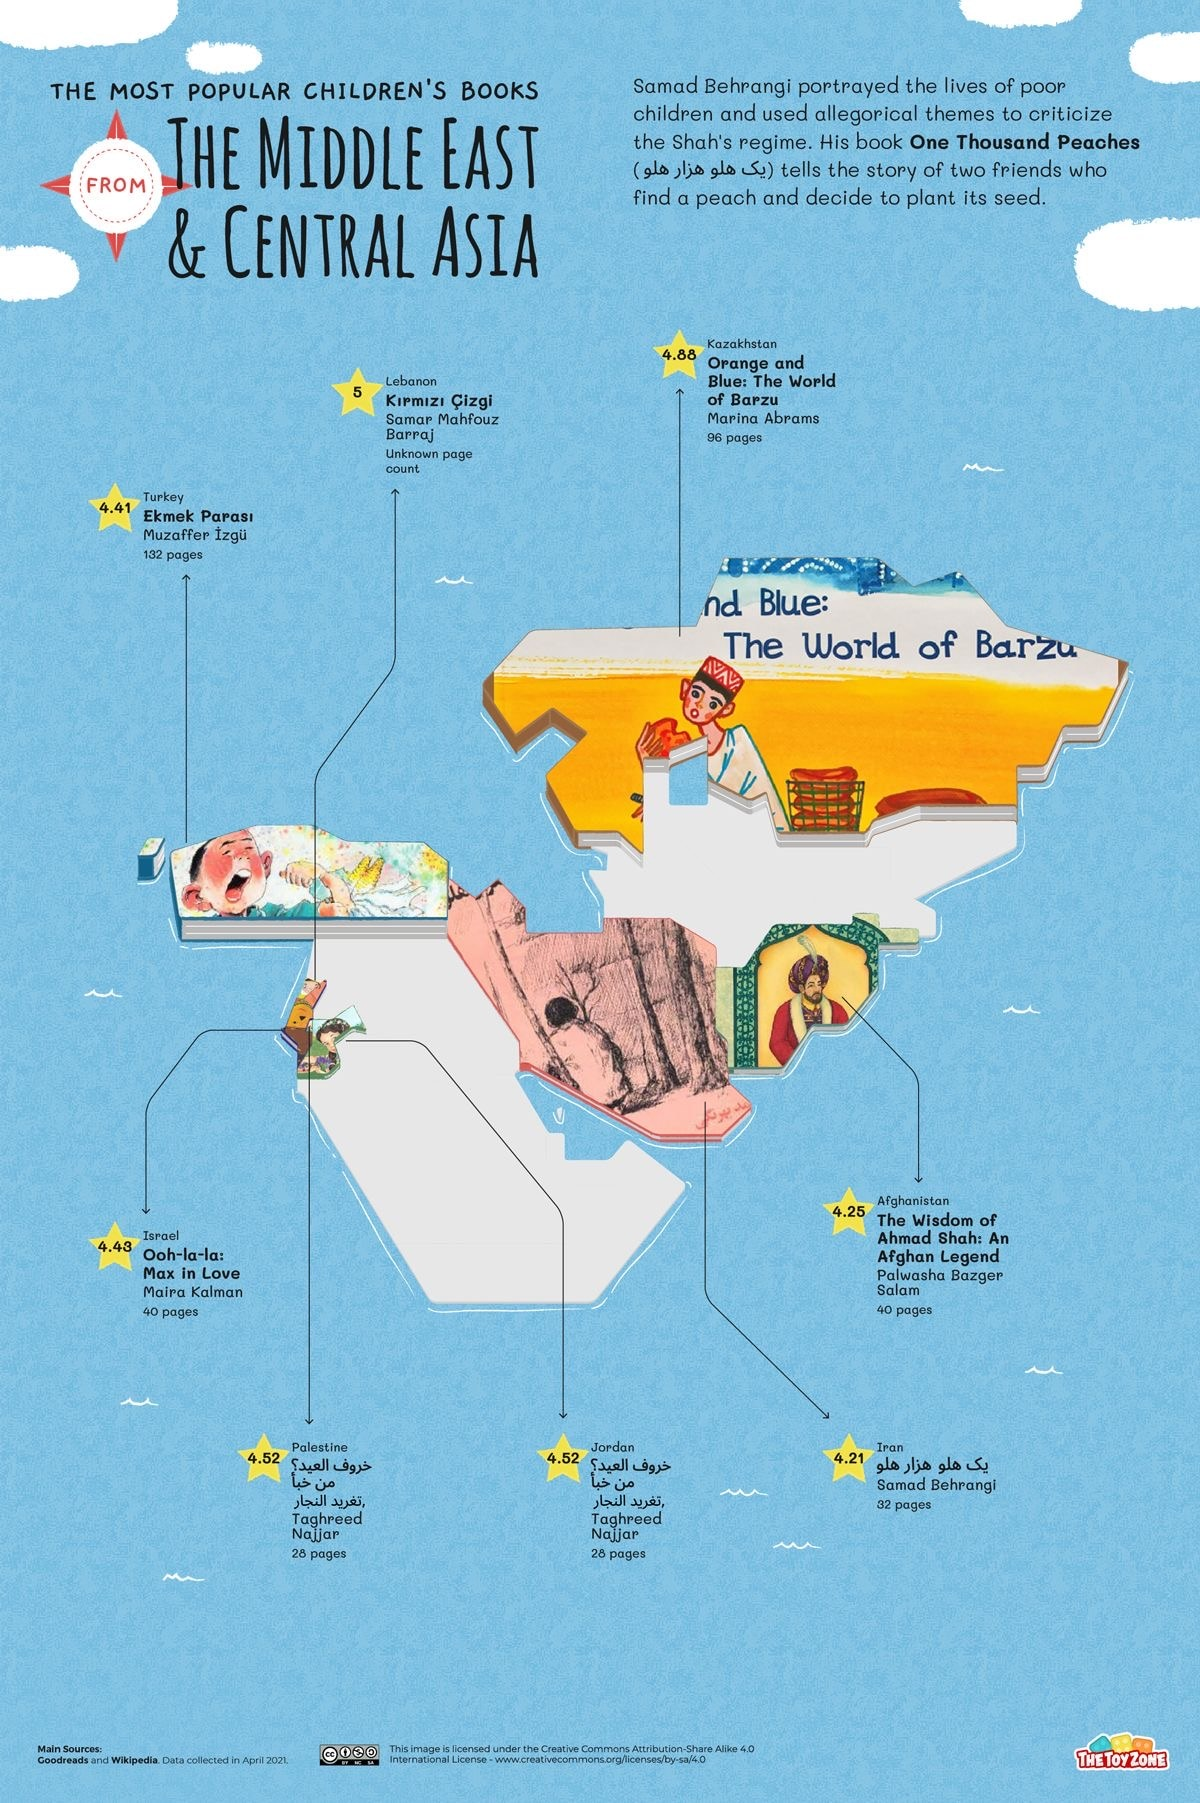 Most popular children's books from Middle East Asia